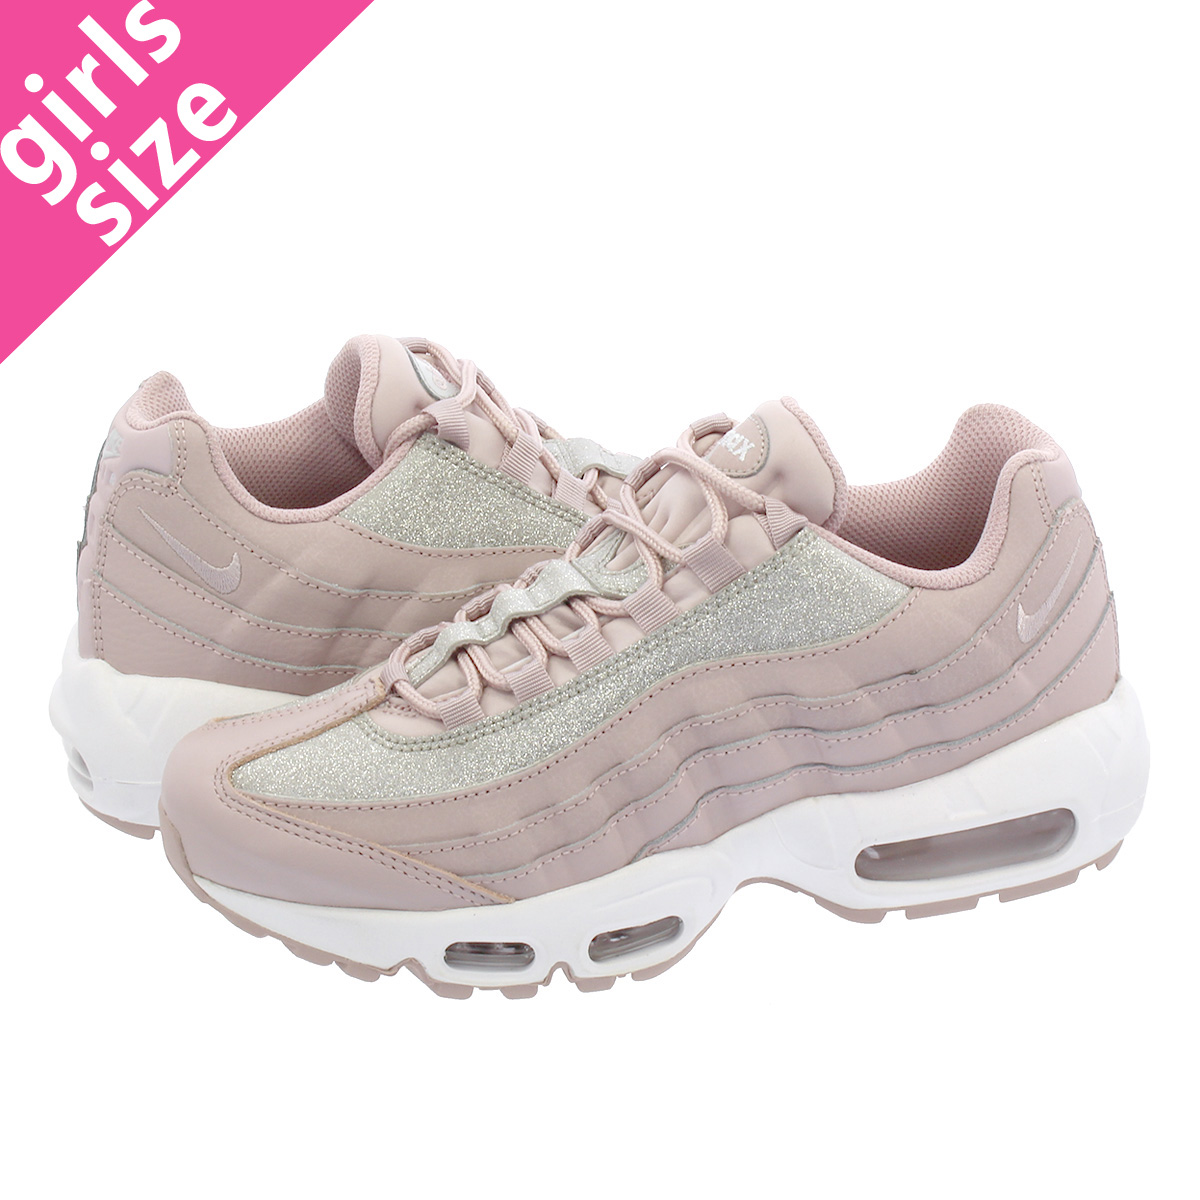 reputable site e6fdf daadf NIKE WMNS AIR MAX 95 SE Nike women Air Max 95 SE PARTICLE ROSE PURE ...